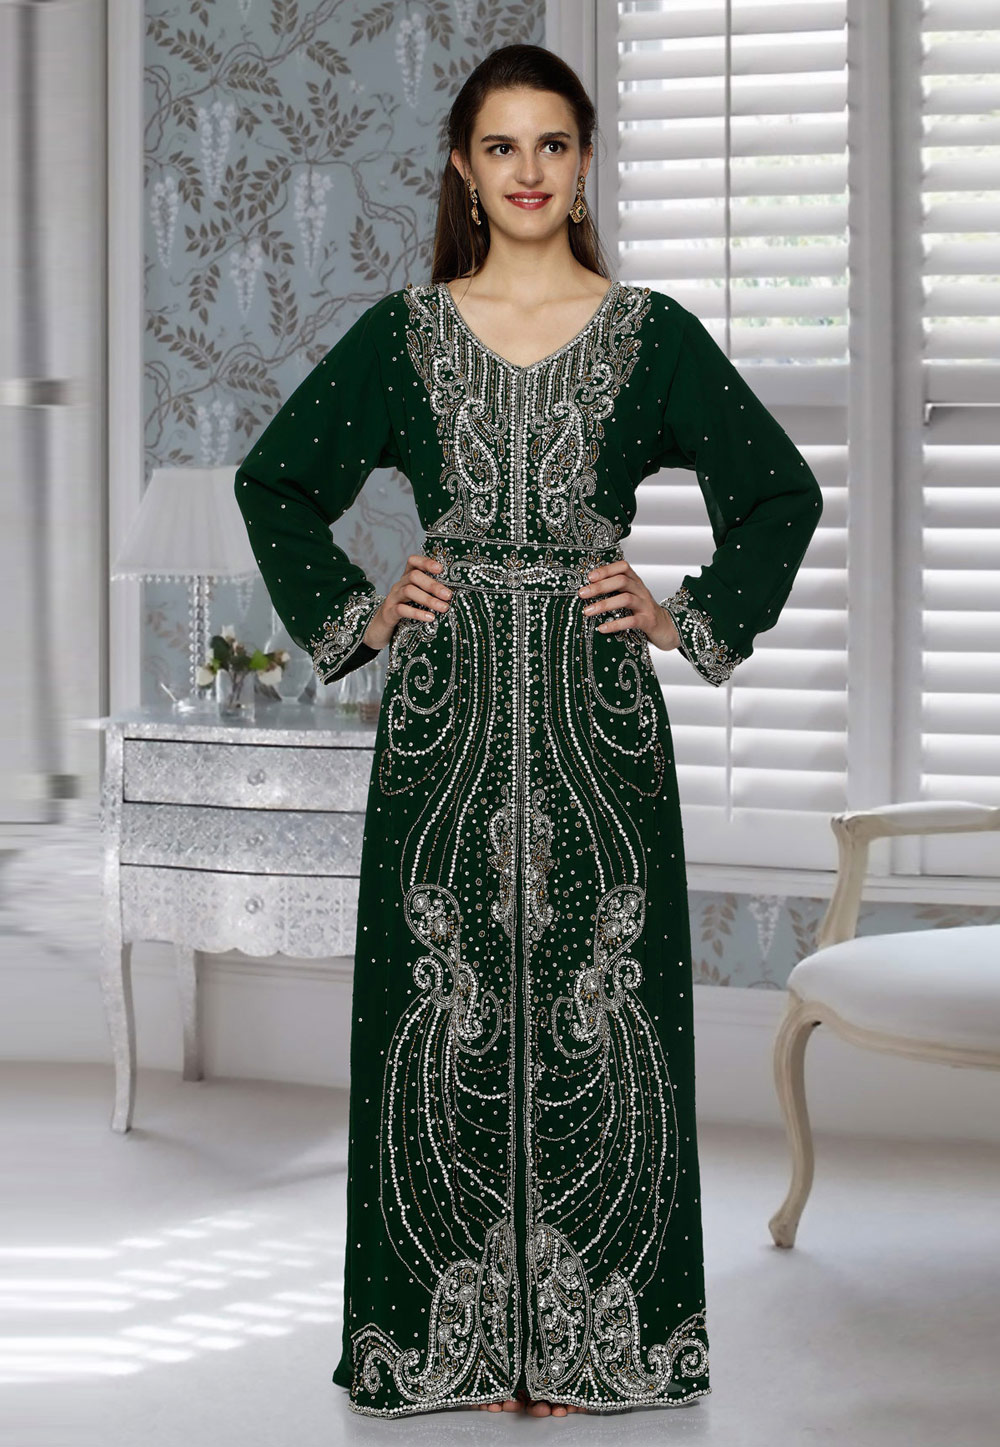 Green Faux Georgette Embroidered Readymade Kaftan 194782